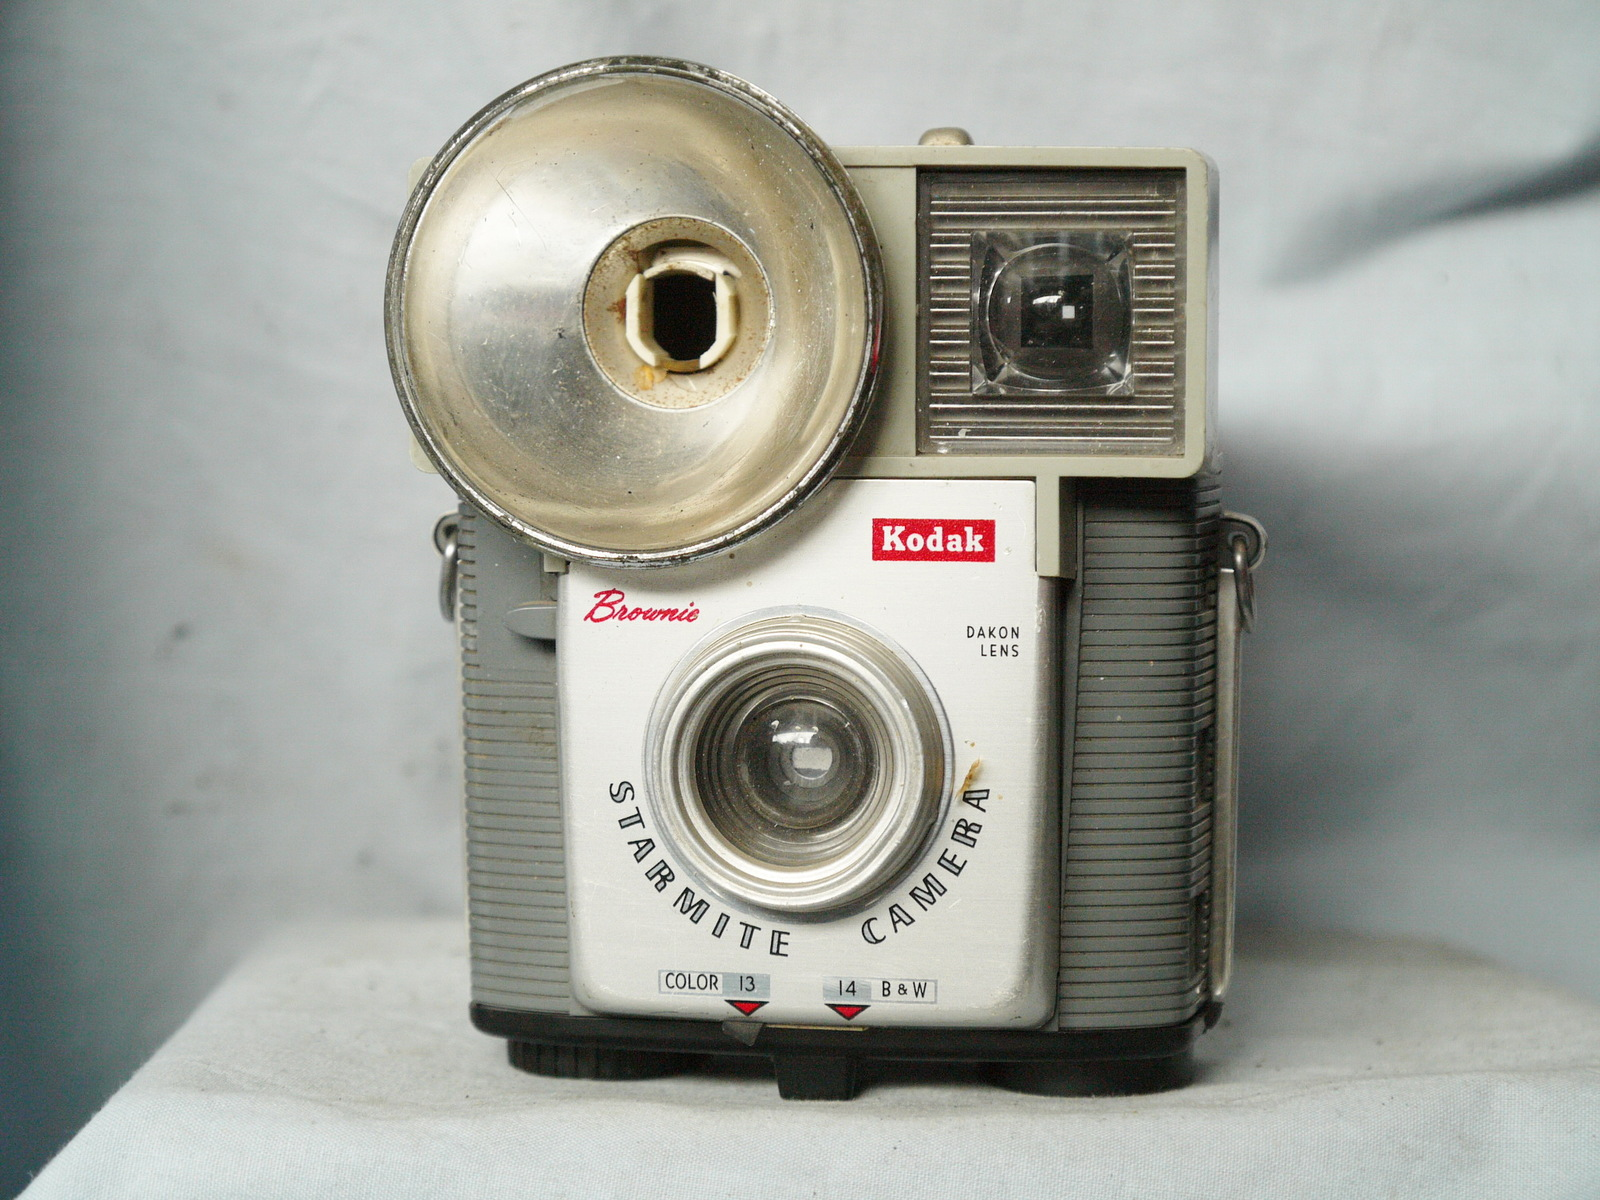 Primary image for Kodak Starmite Vintage Camera - Nice Great Display Item -